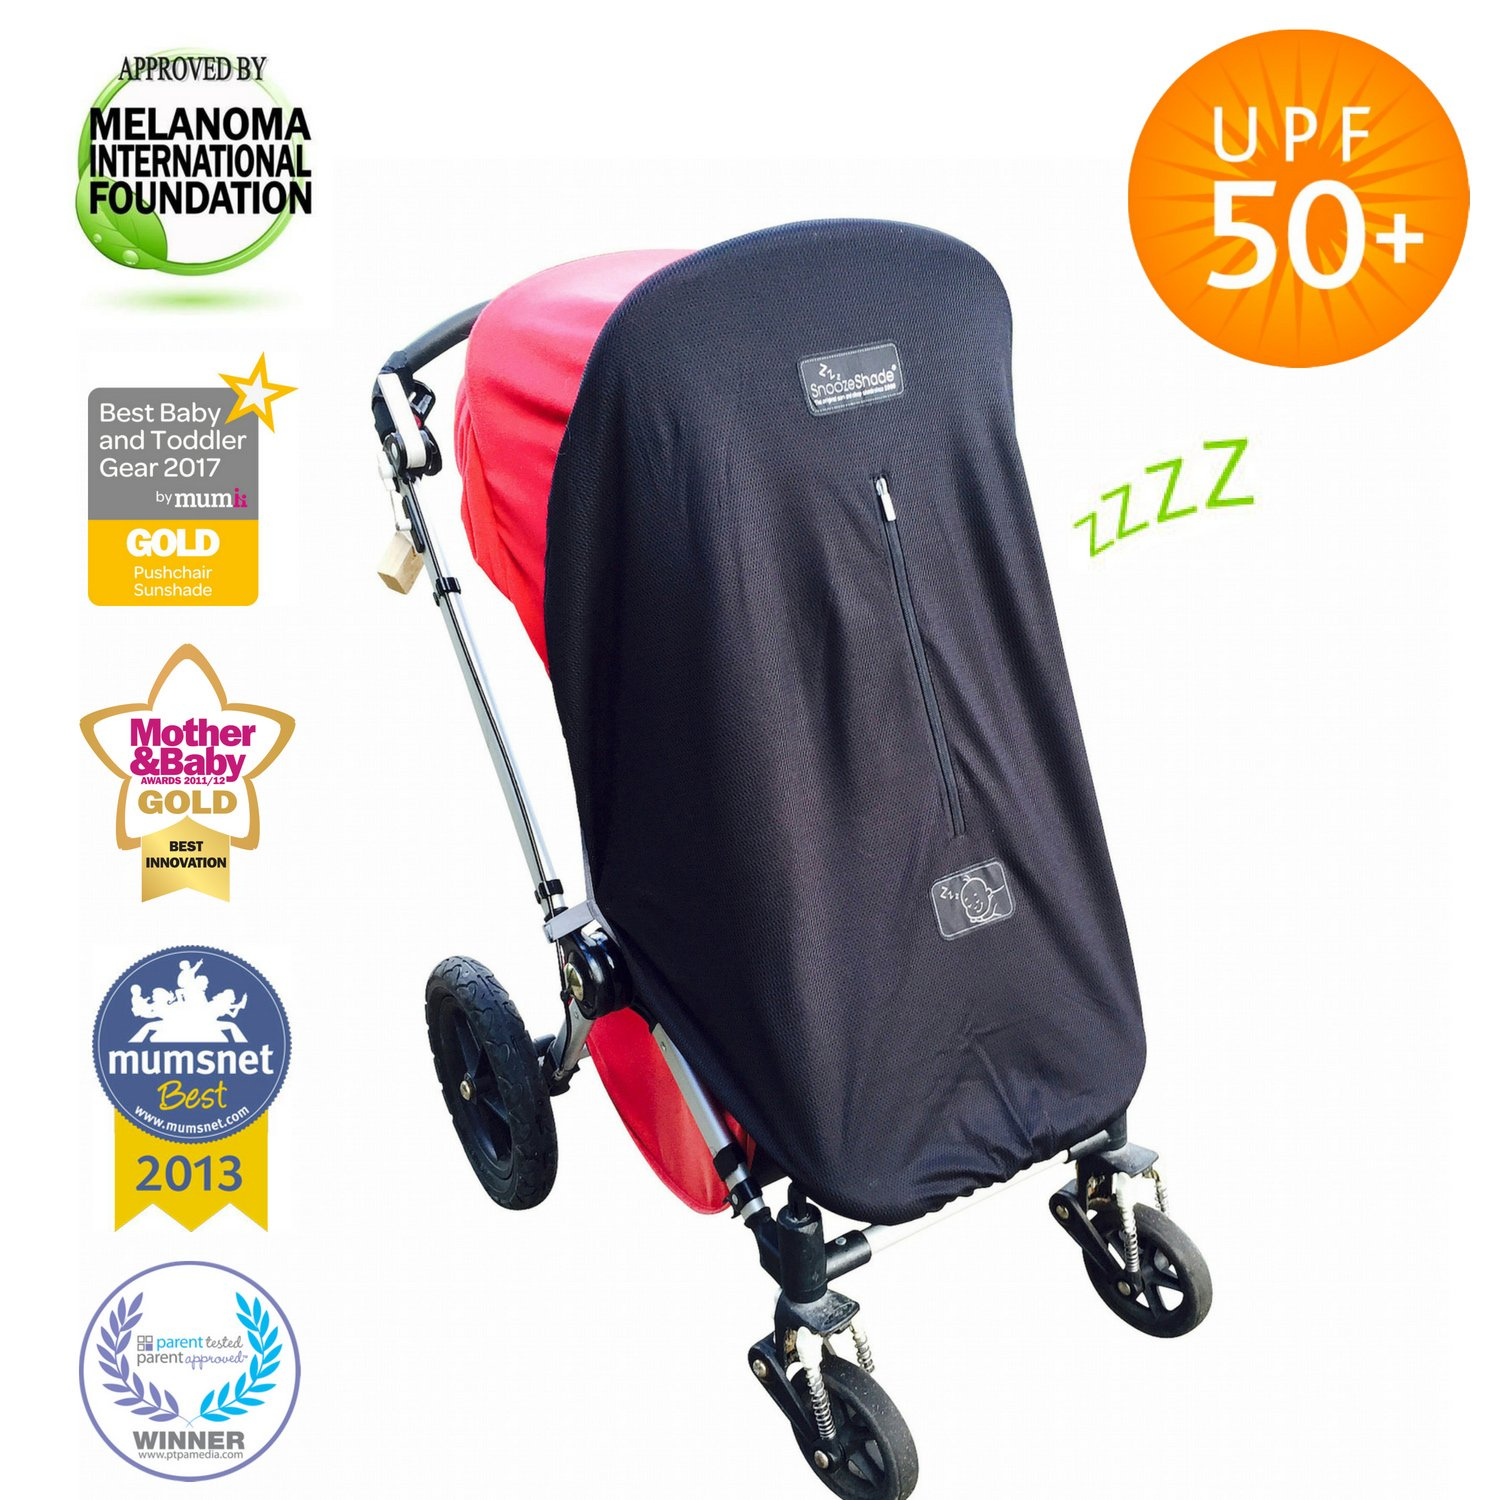 Baby Sun Shade and Blackout Blind for Strollers | Blocks 99% of UV | Breathable and Universal fit | SnoozeShade Original - Limited Edition (Gray Trim)